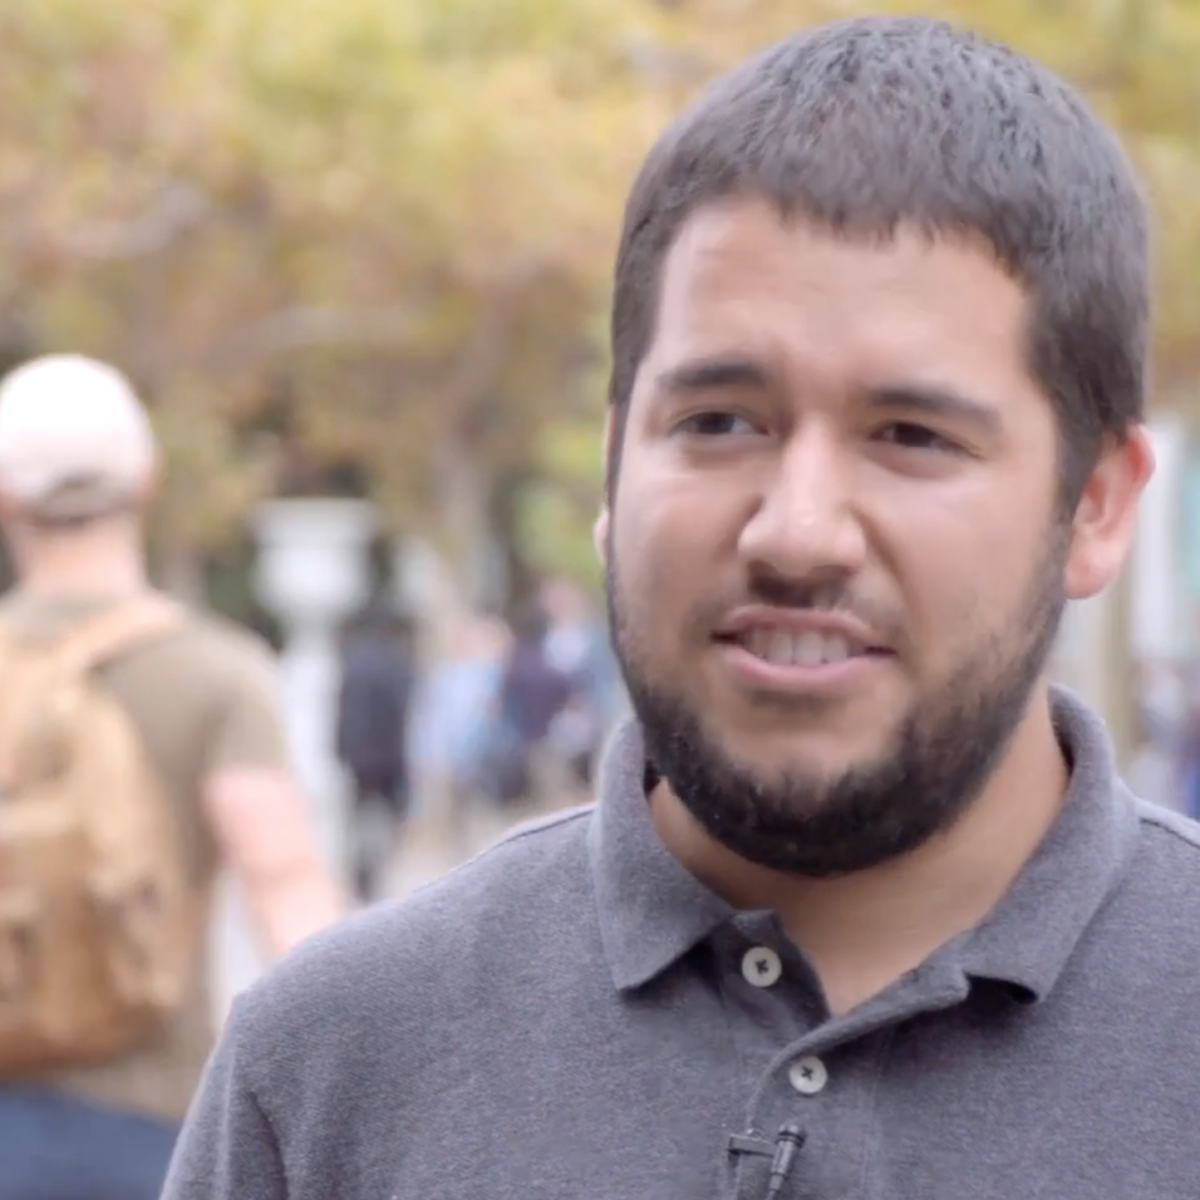 video still: Student explains how Yup has changed his outlook on math dramatically